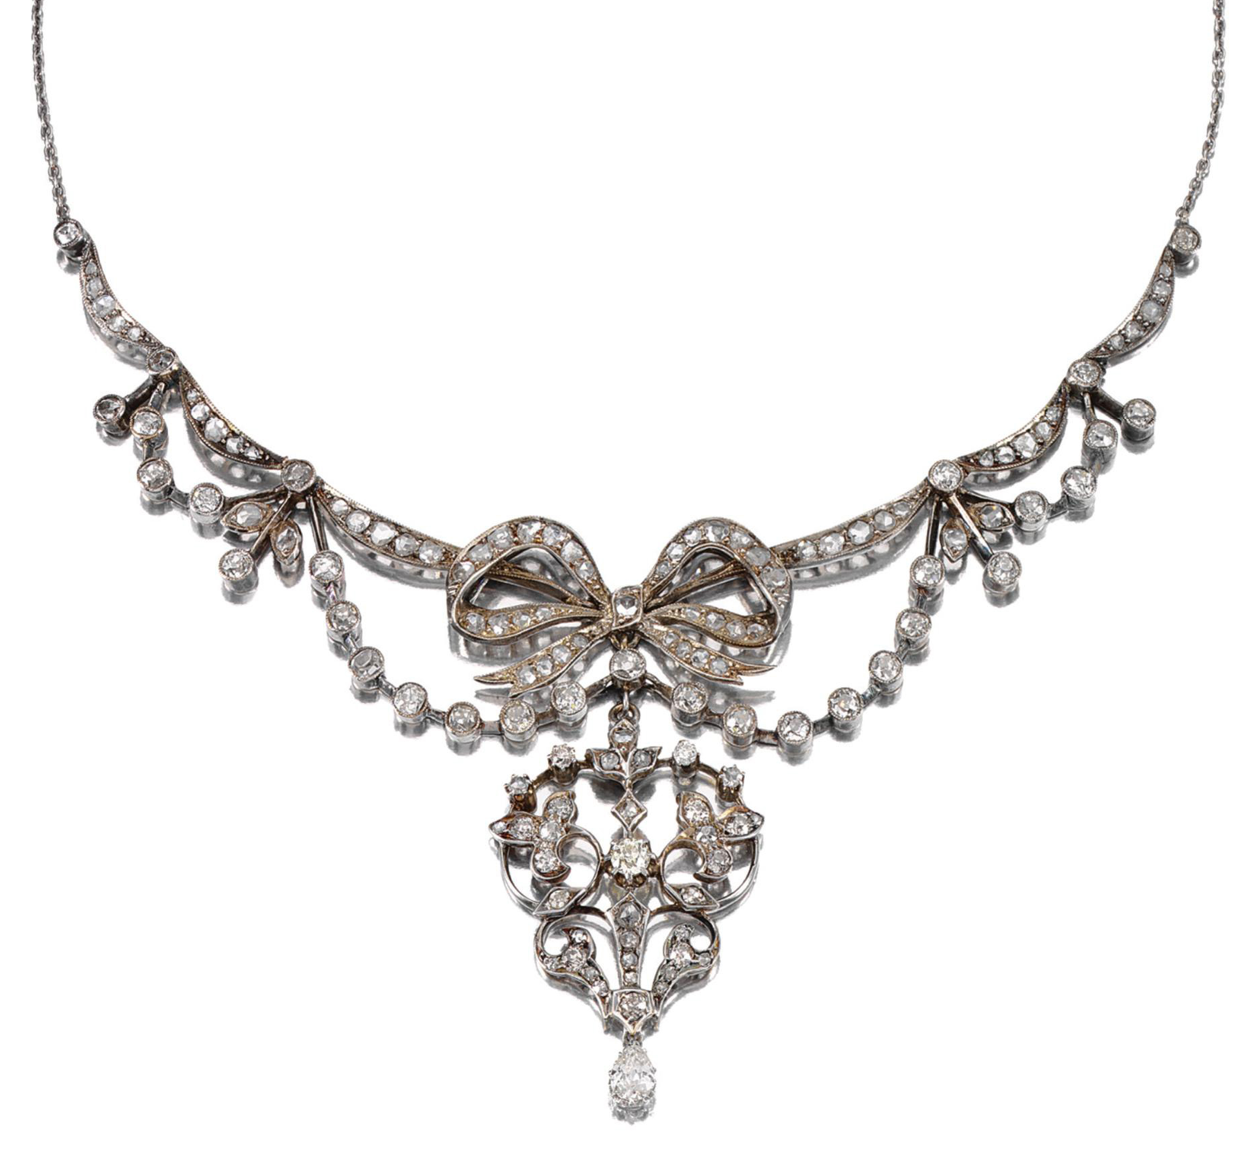 DIAMOND PENDANT NECKLACE, LATE 19TH CENTURY The central ribbon bow motif framed by foliate swags and suspending an open work pendant terminating on a pear-shaped diamond drop, set throughout with circular- and rose-cut diamonds, to a trace link chain, length approximately 430mm, composite, later chain, case.